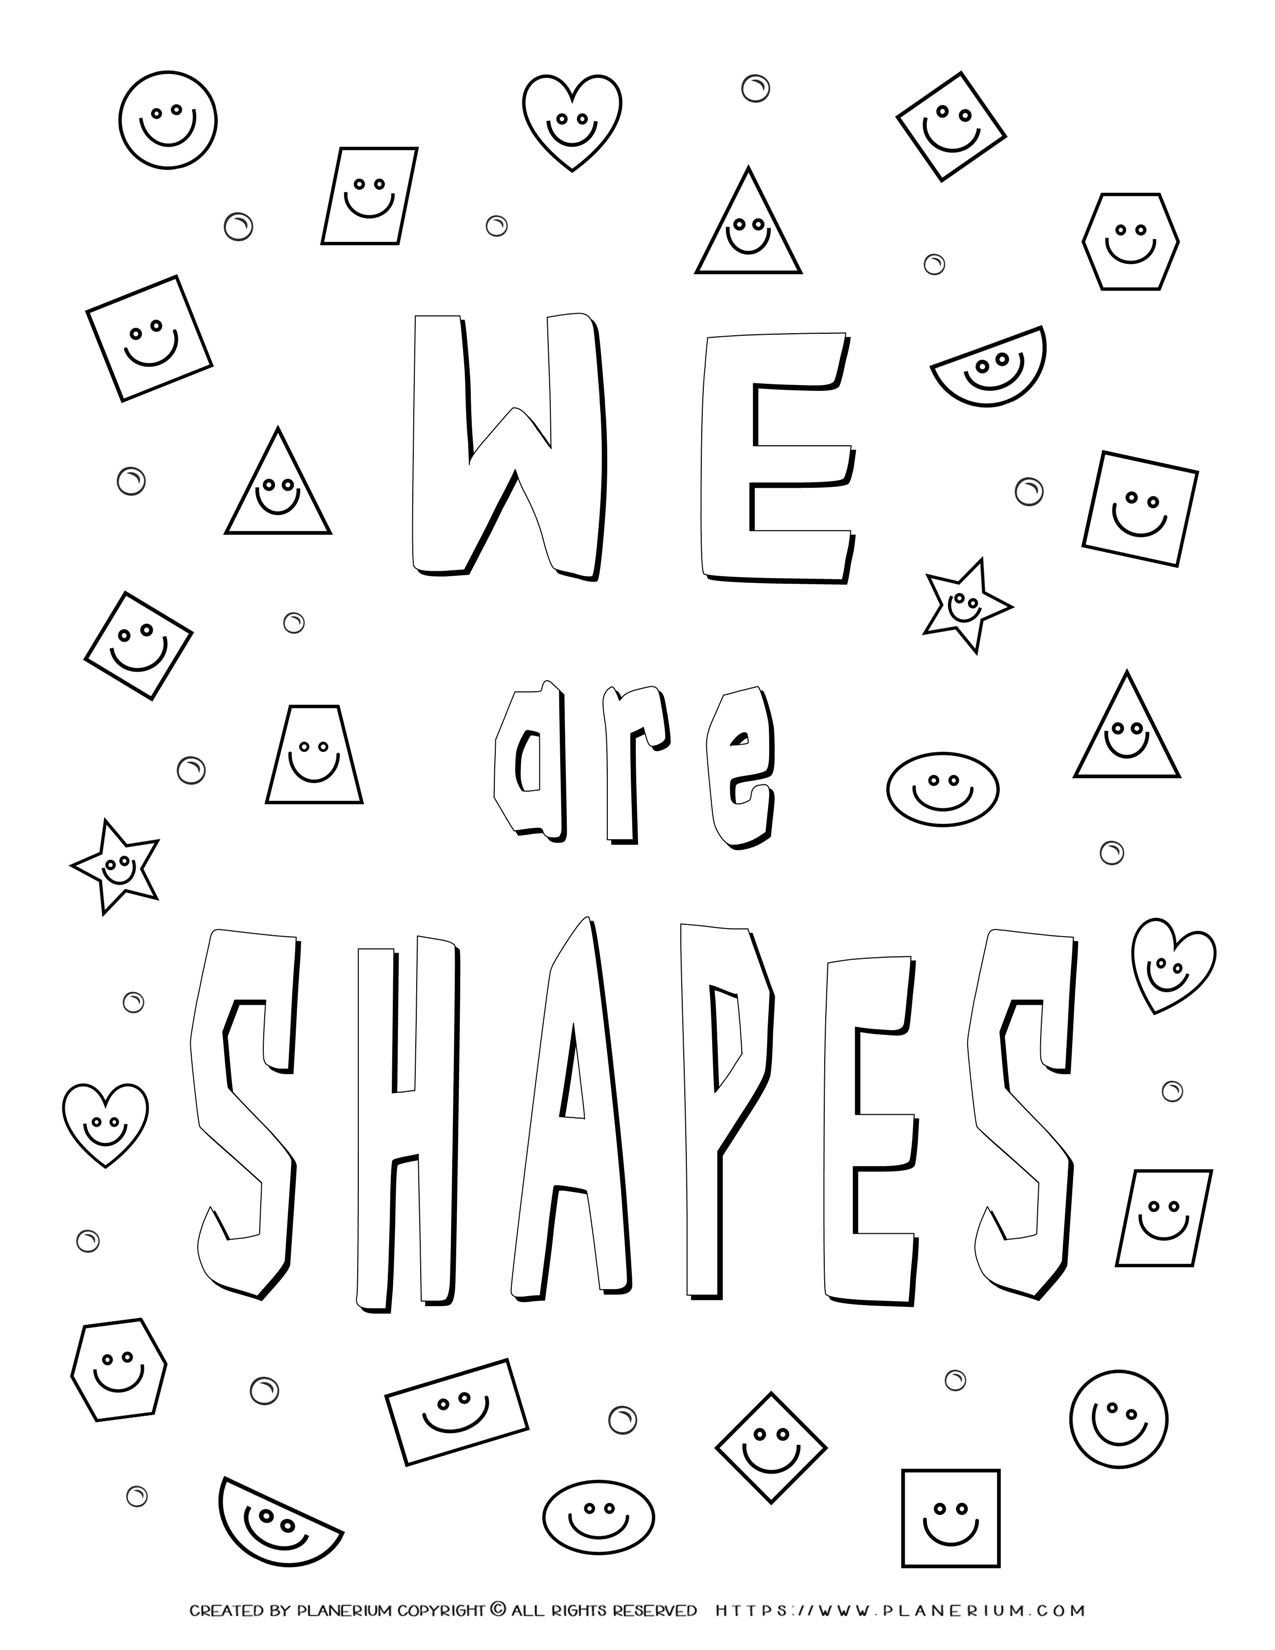 Shapes Coloring Pages - We Are Shapes   Planerium